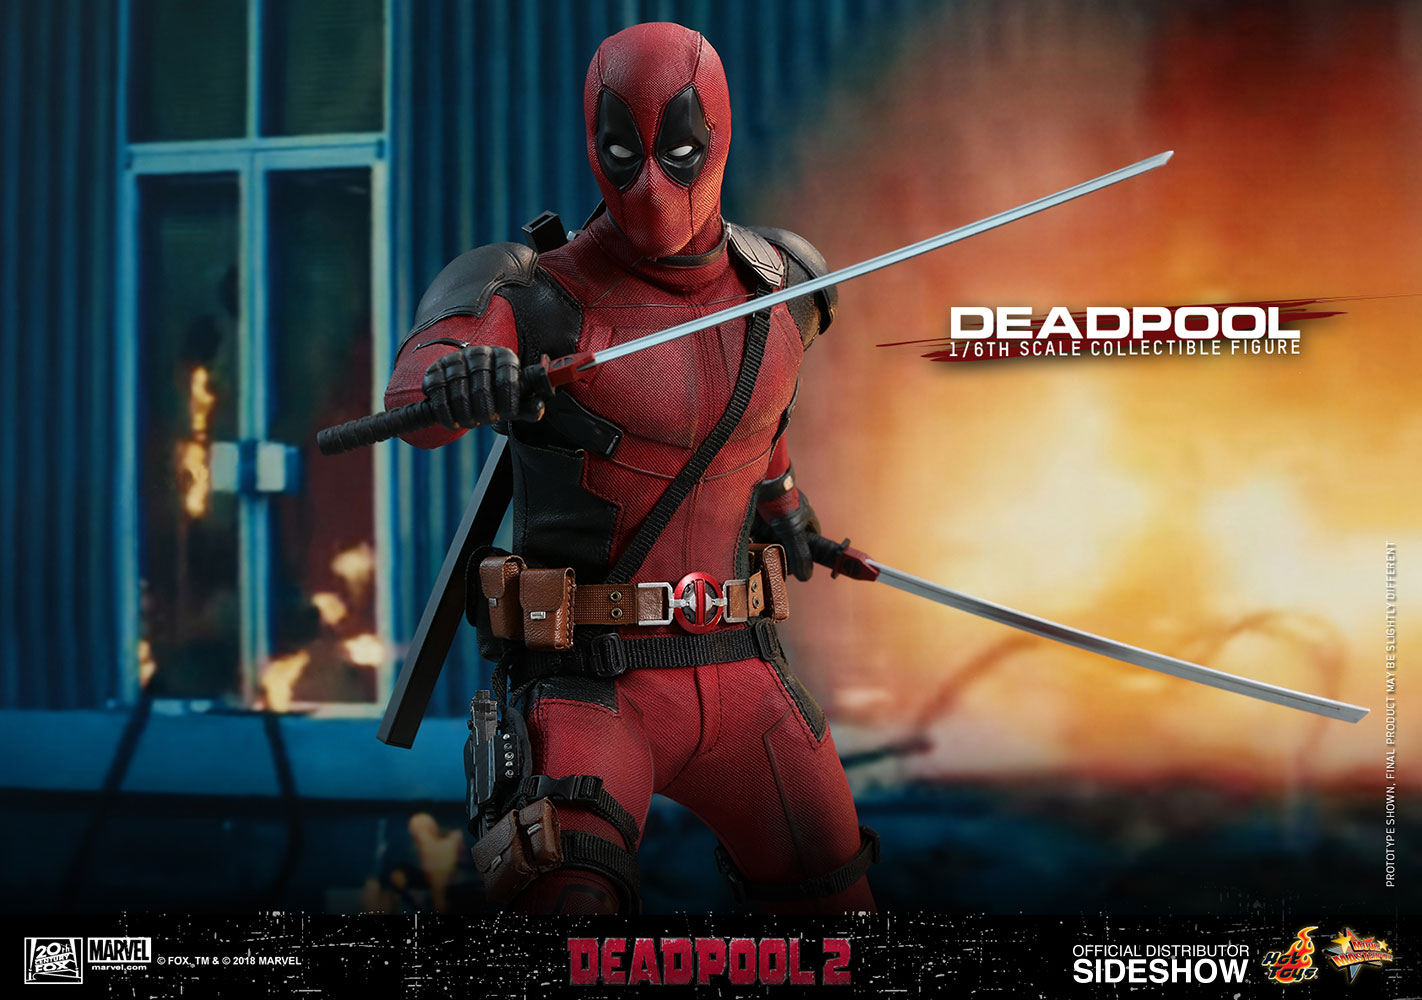 [Pre-Order] Deadpool 2 - Deadpool Movie Masterpiece